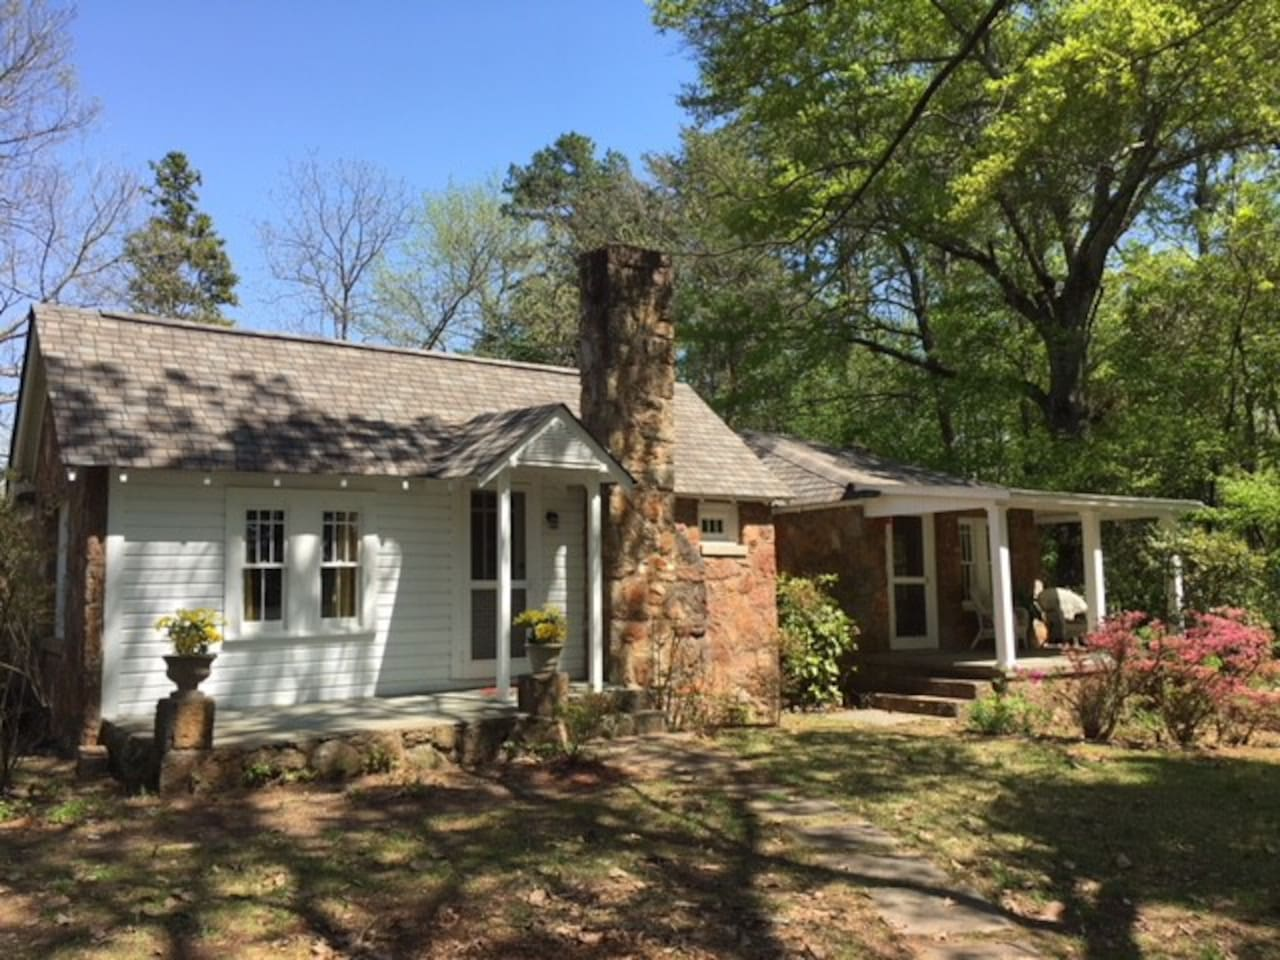 Adorable 1930's rock cottage within minutes to downtown Greenville and downtown Travelers Rest!